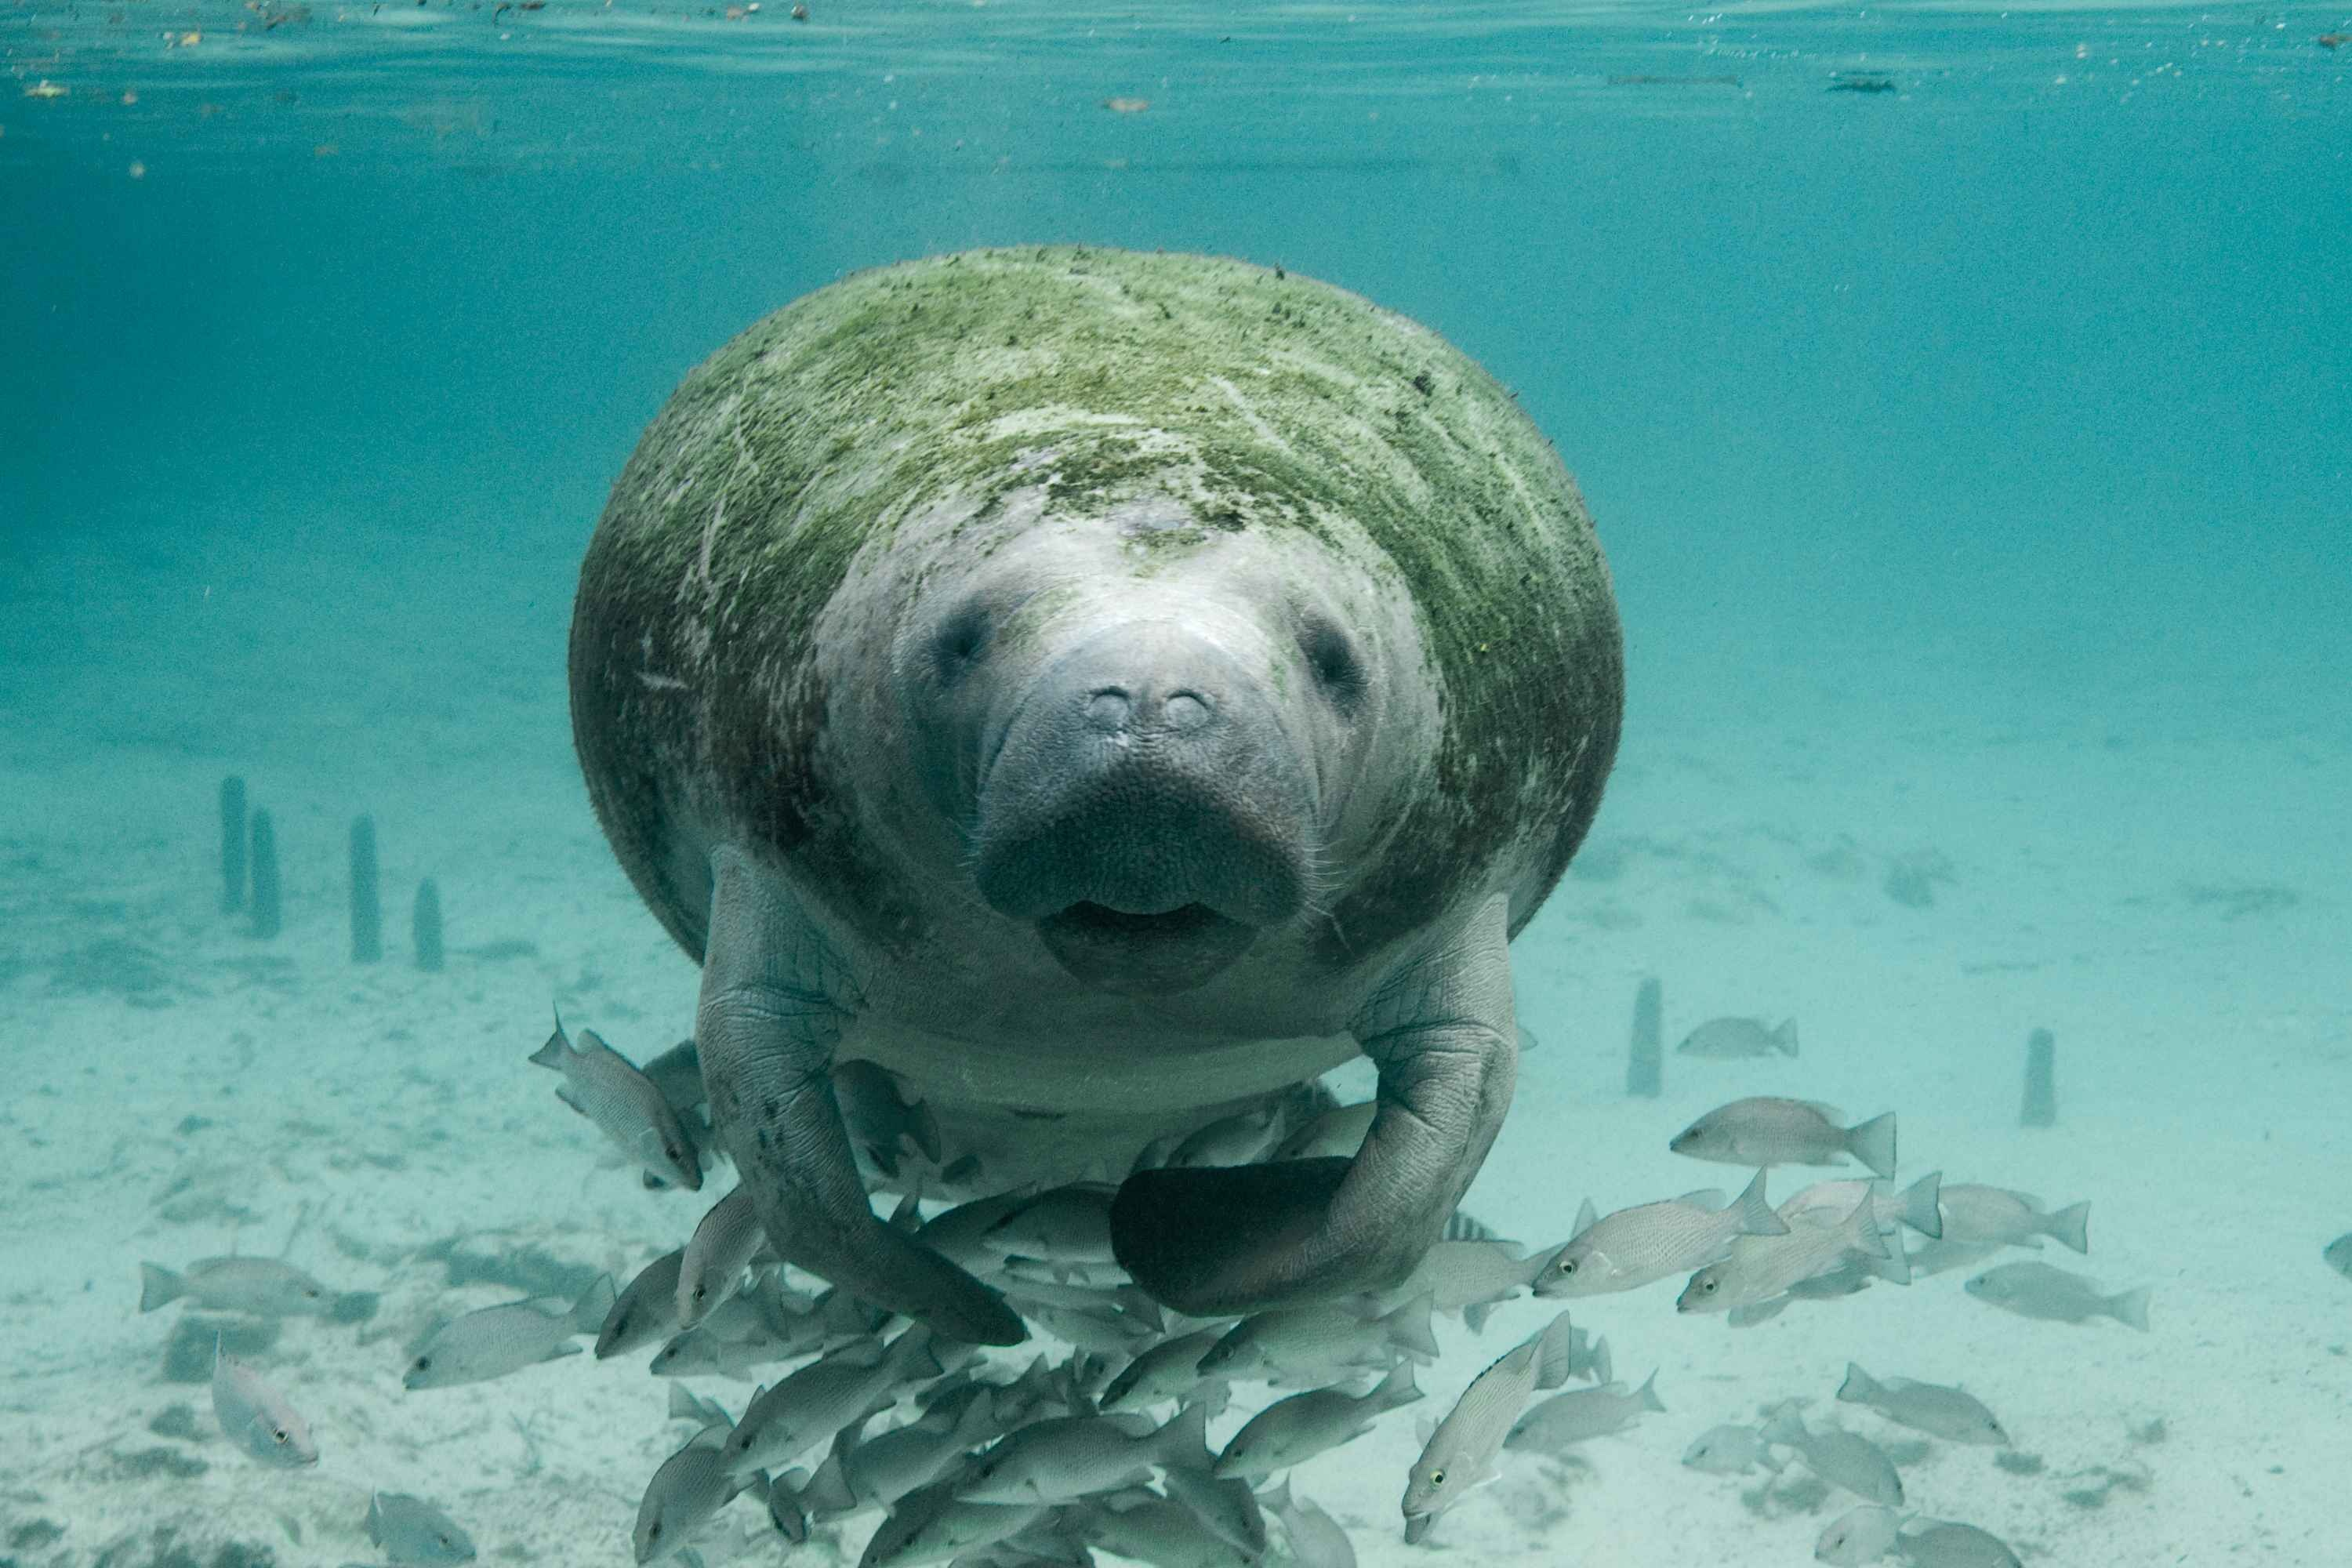 The west indian manatee is found in Crystal River and Homosassa Florida.